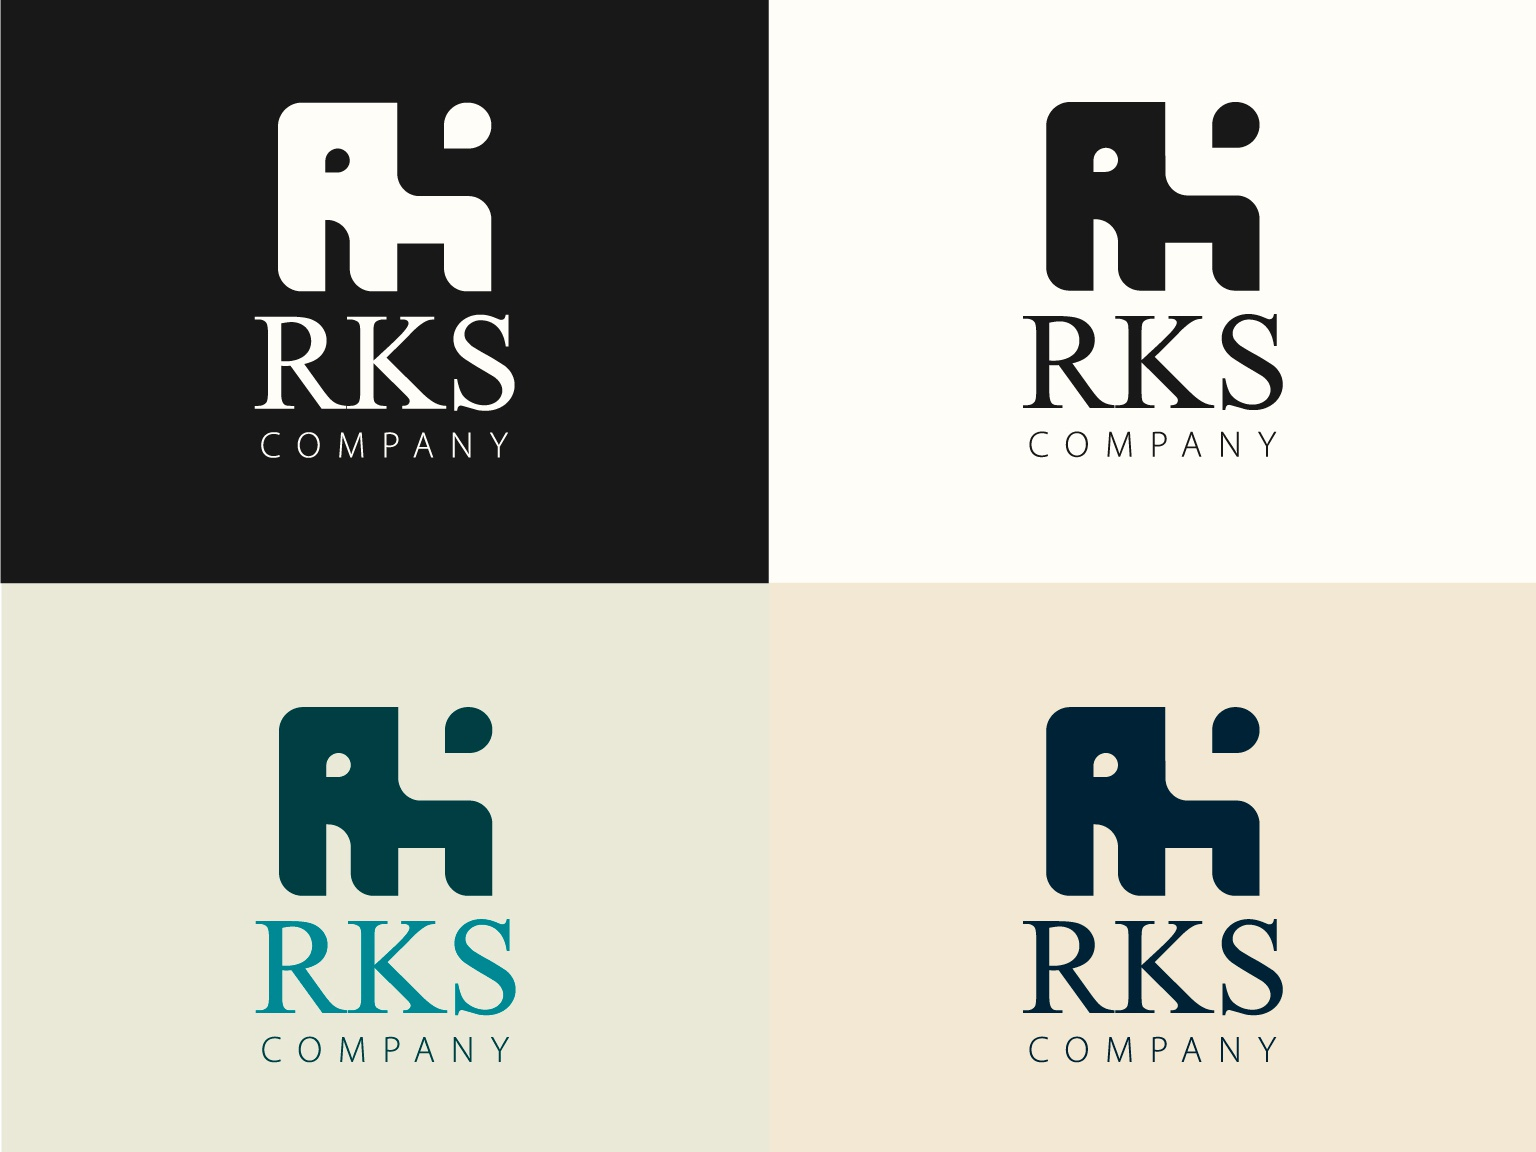 RKS illustration branding logo vector design